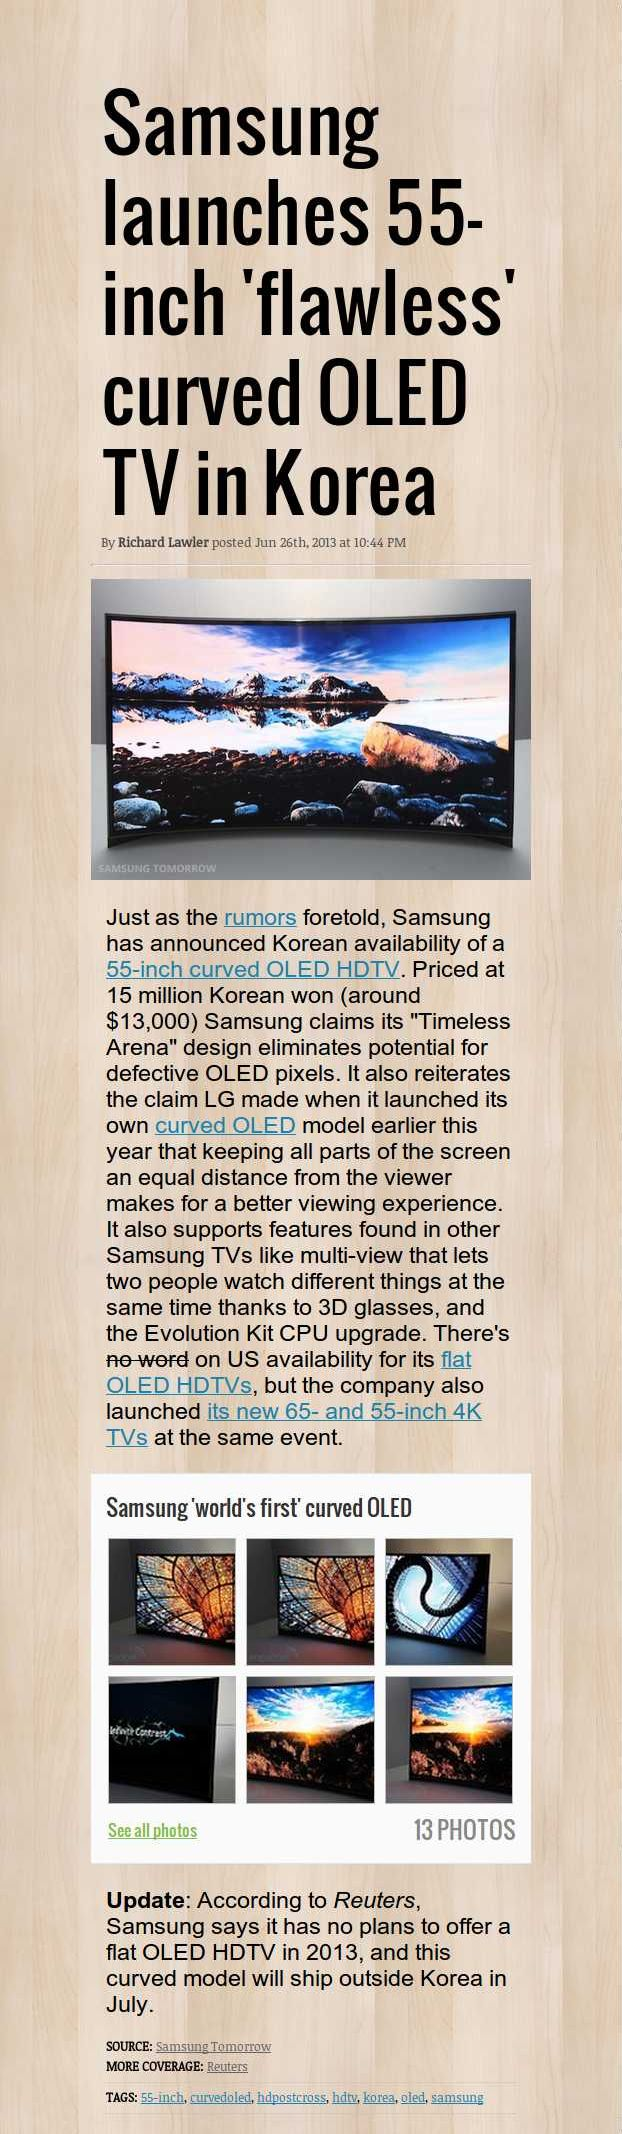 http://www.engadget.com/2013/06/26/samsung-launches-55-inch-flawless-curved-oled-tv-in-korea/